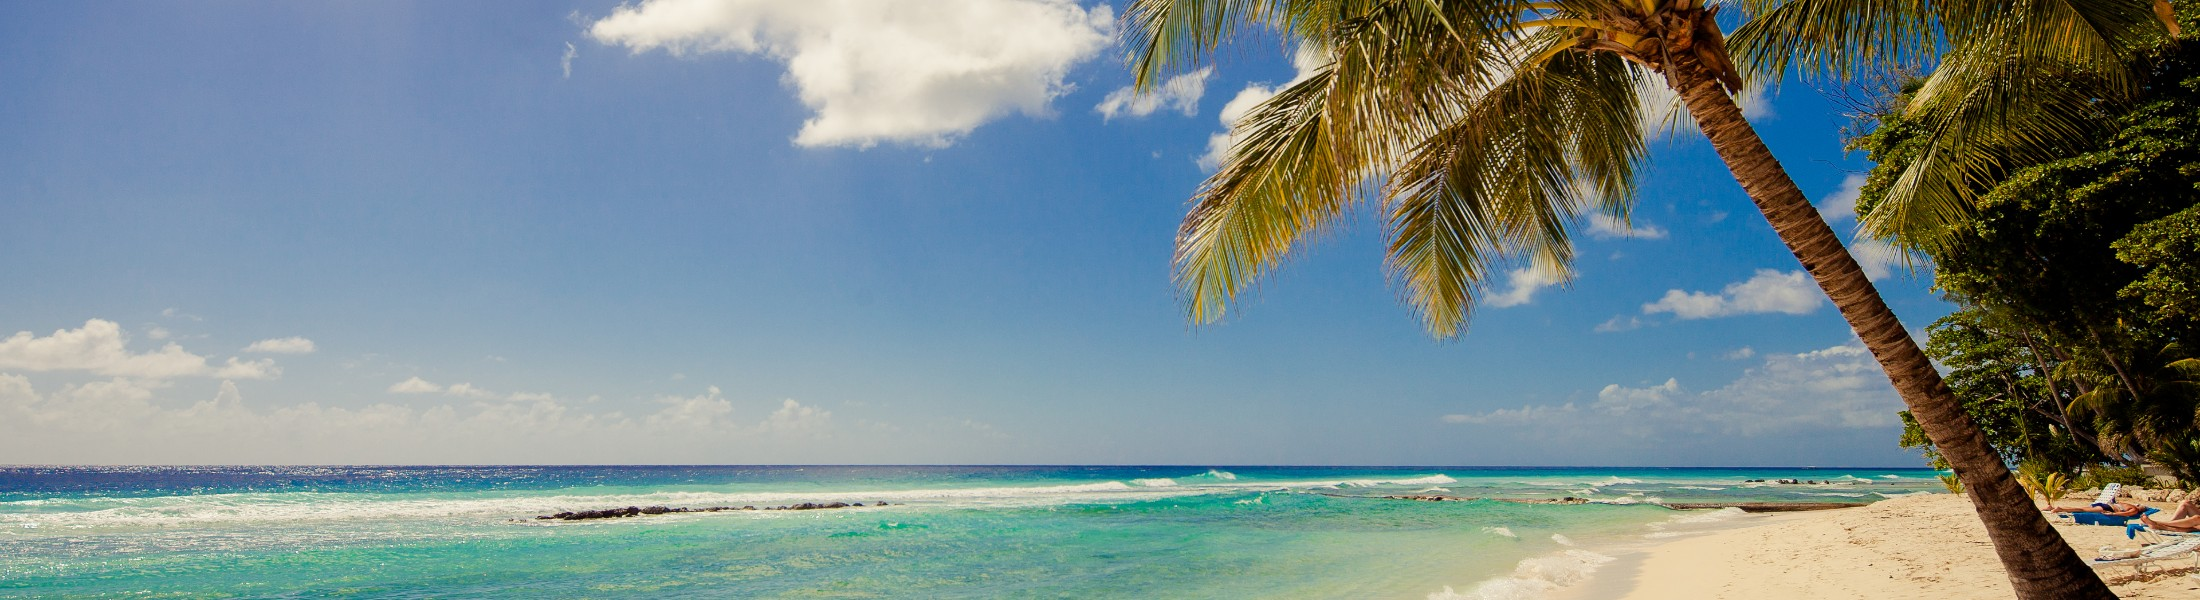 Beach and palm tree at Sugar Bay Barbados